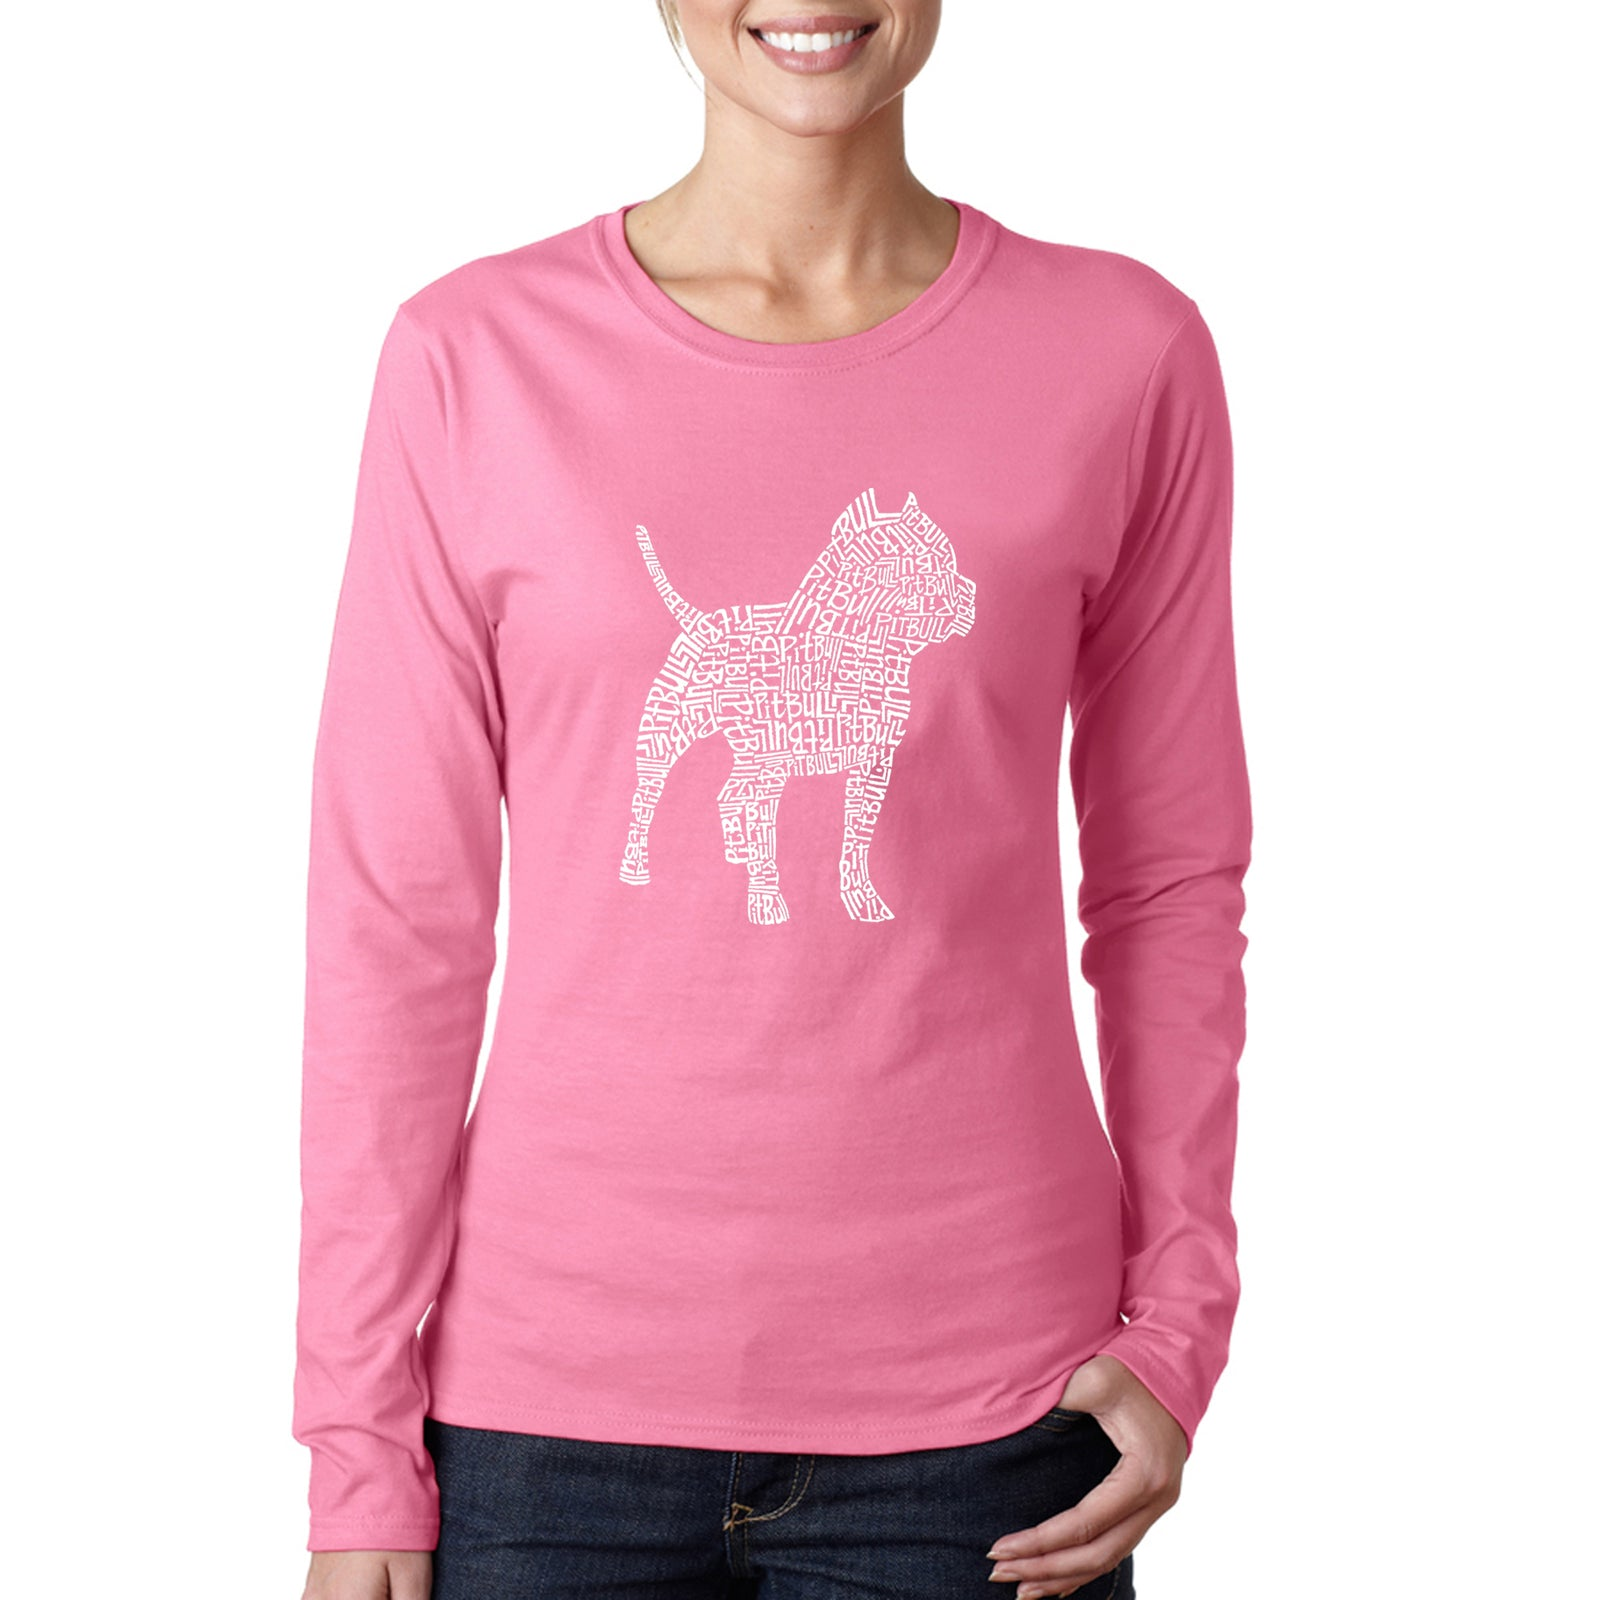 Women's Long Sleeve T-Shirt - Pitbull